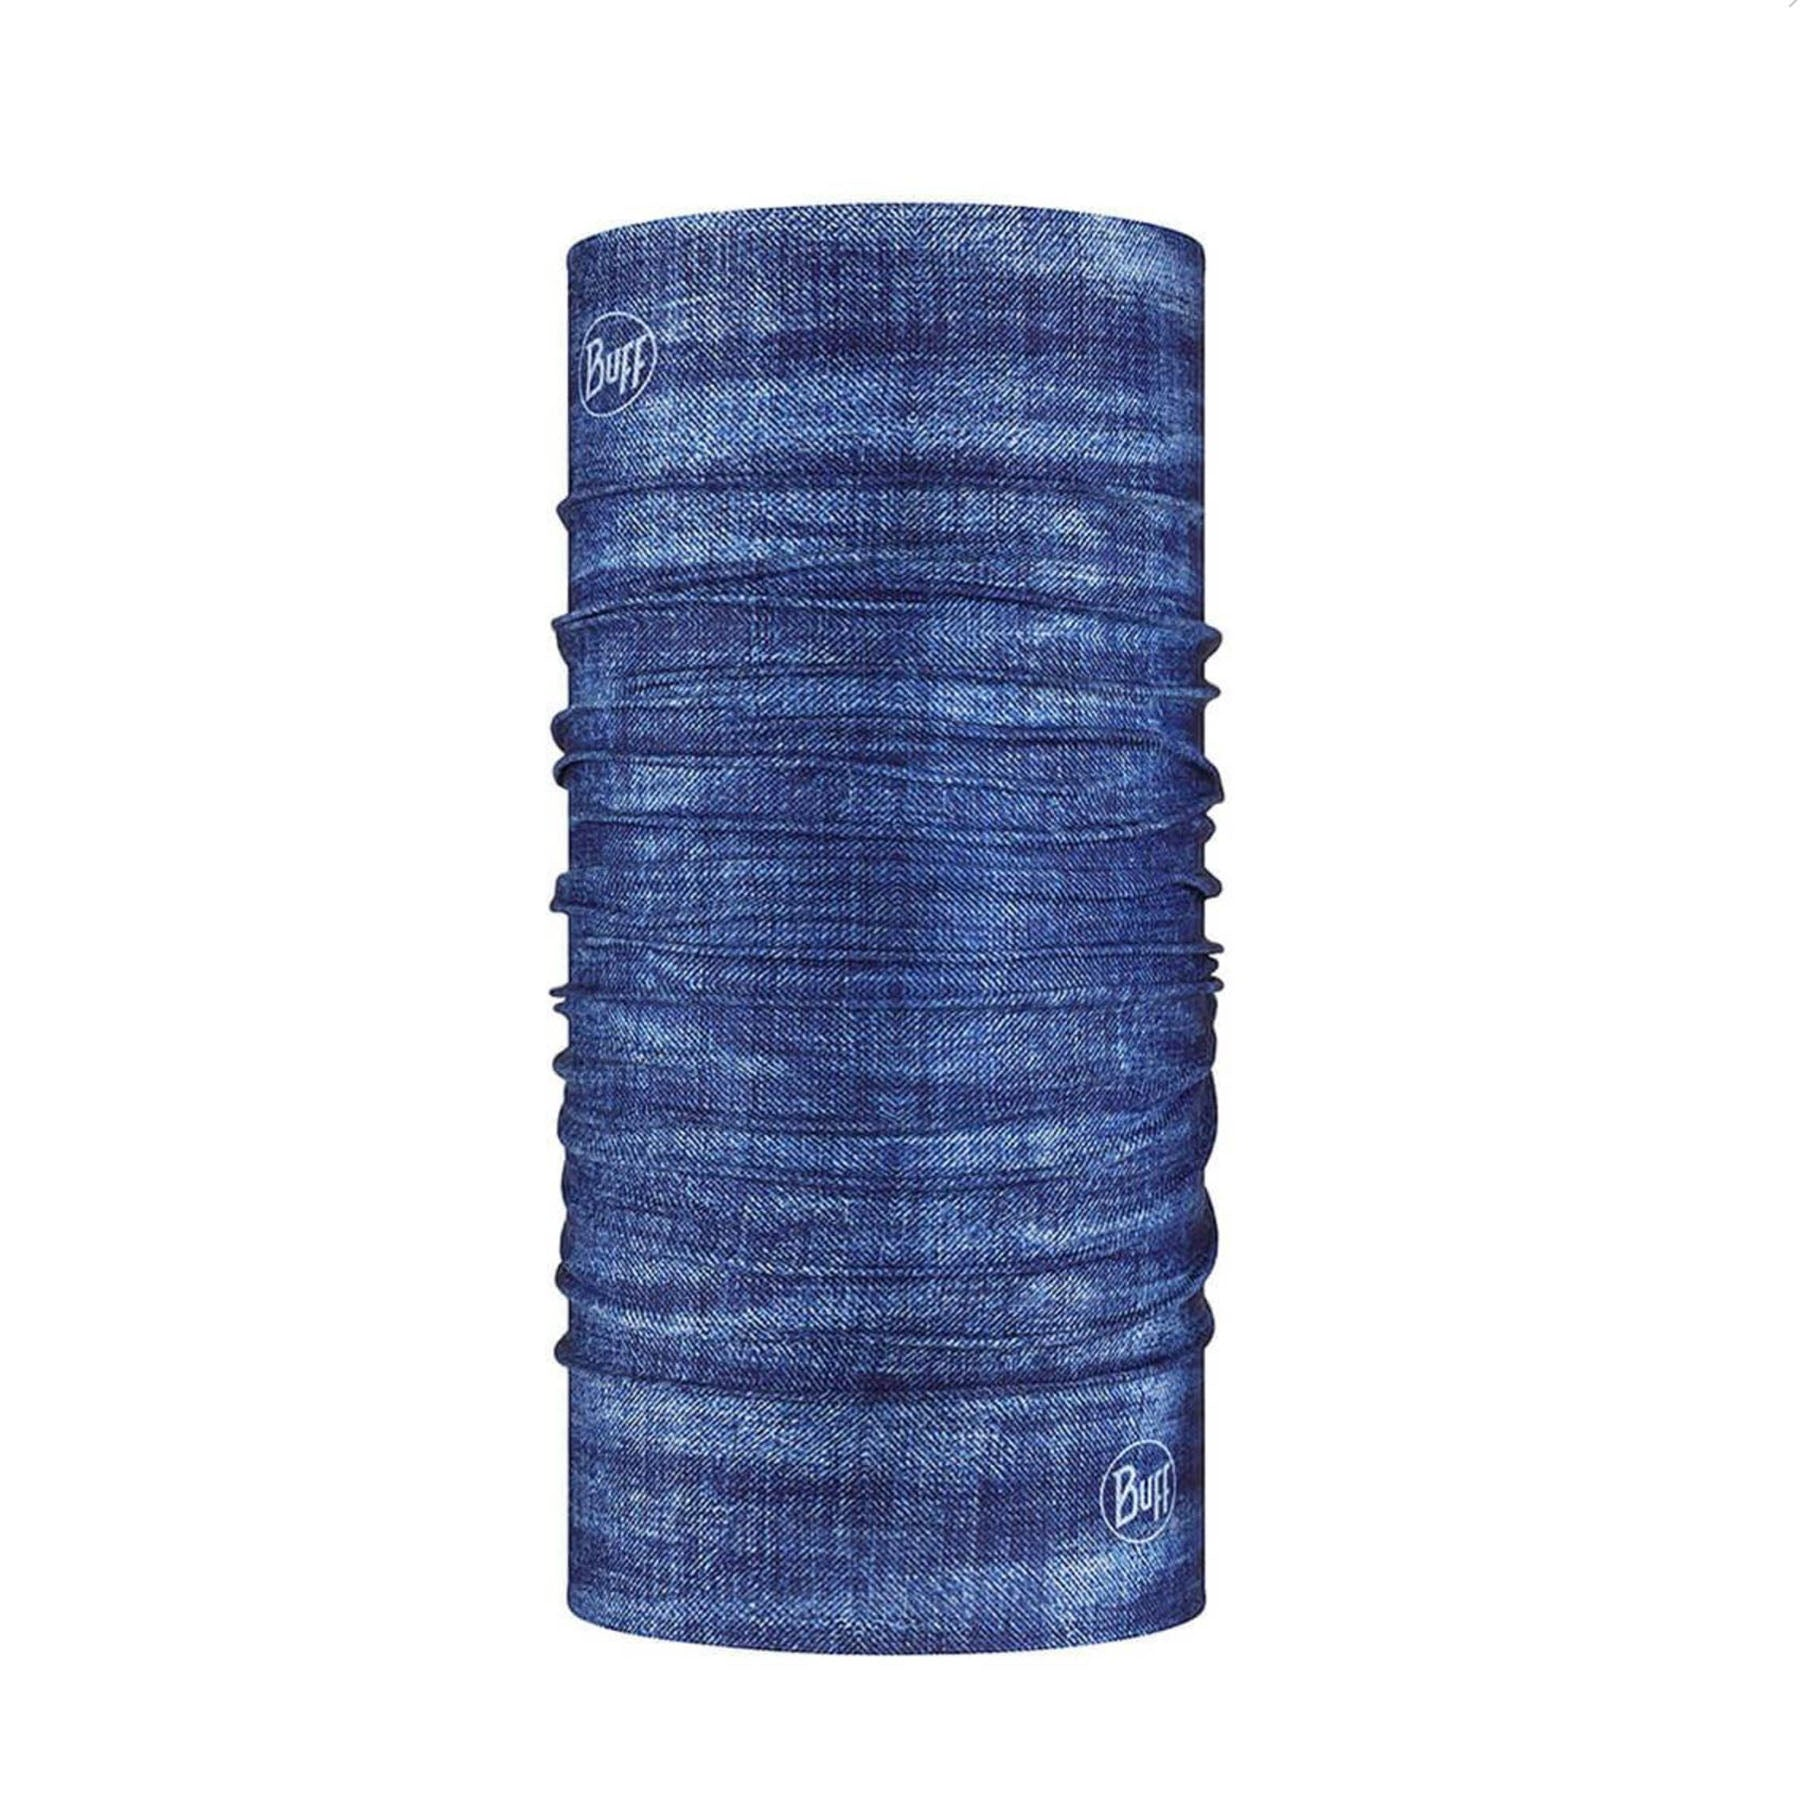 denim blue original buff